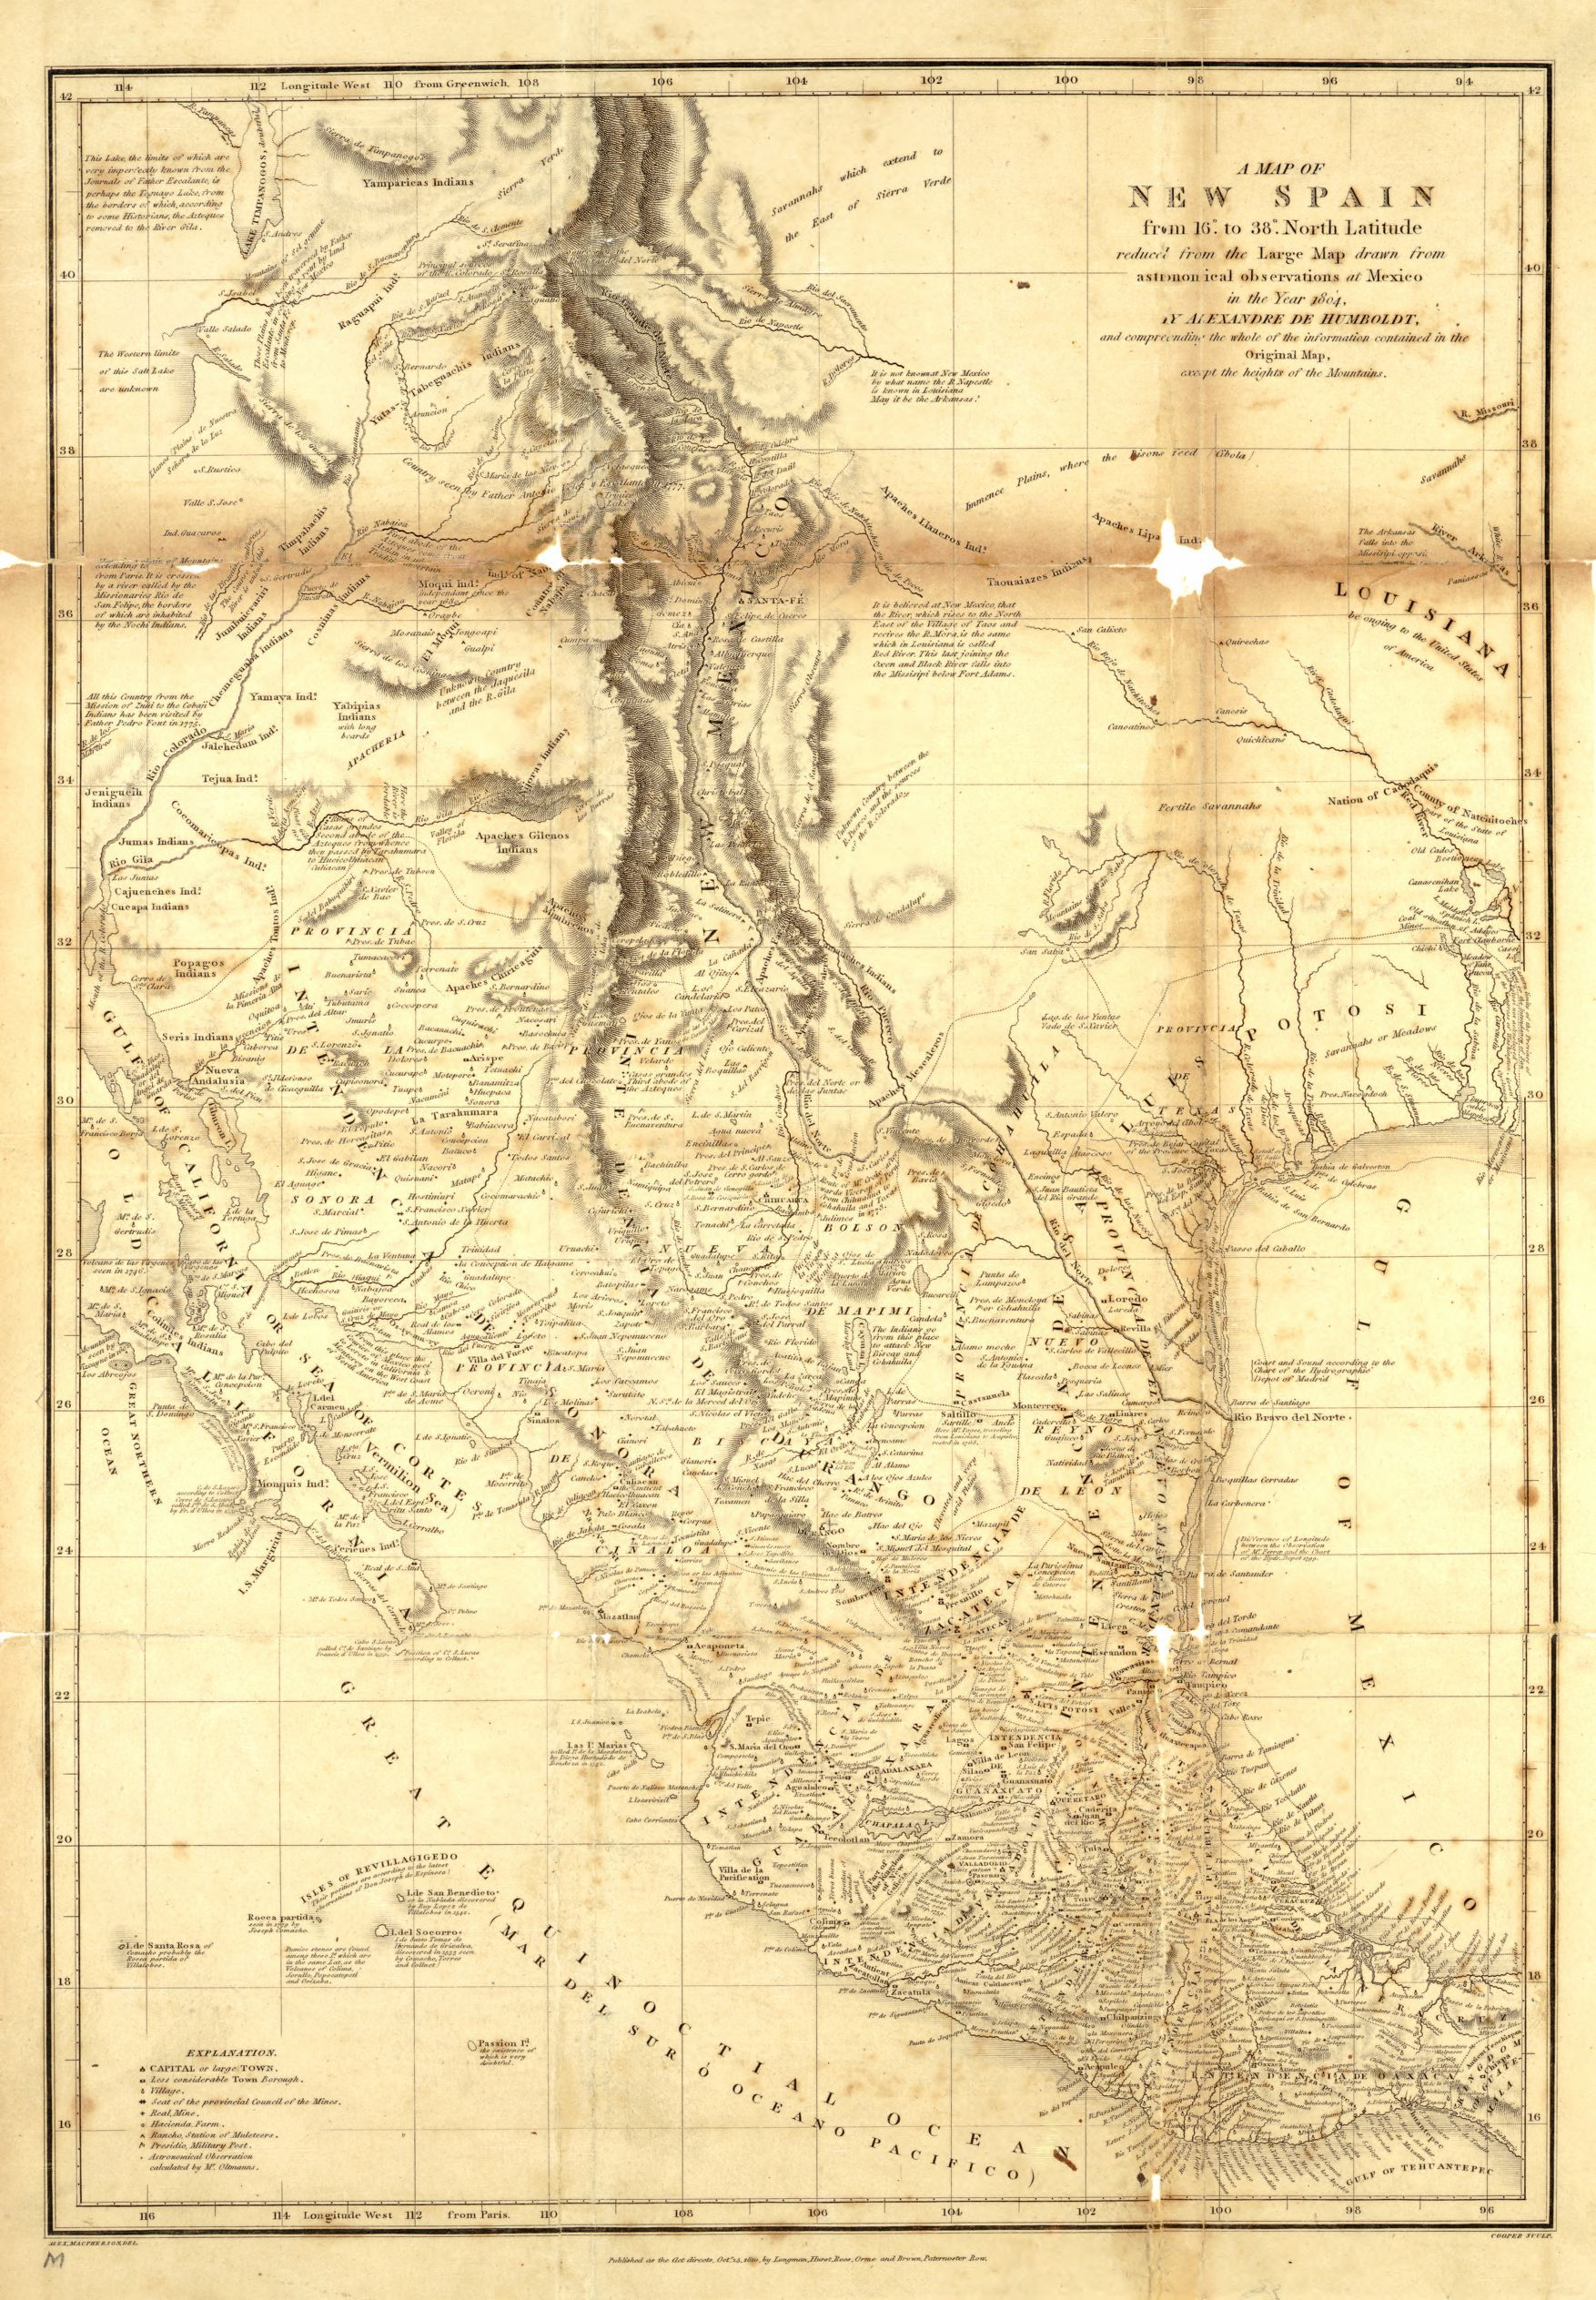 reproduction of 1804 humboldt map